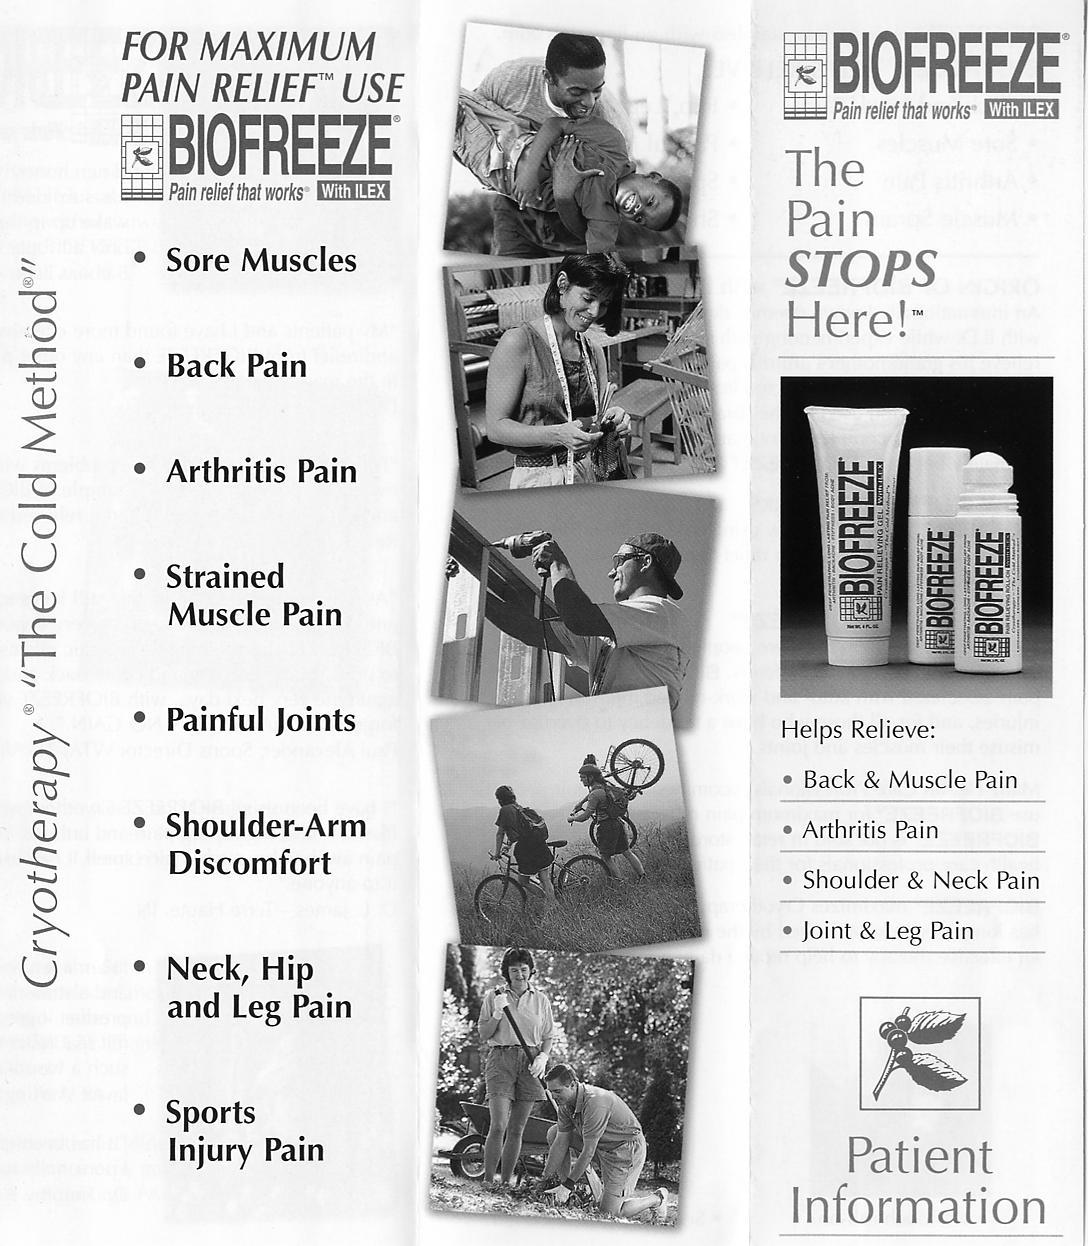 rothstein_manchester_newhampshire_biofreeze_pg1.jpg